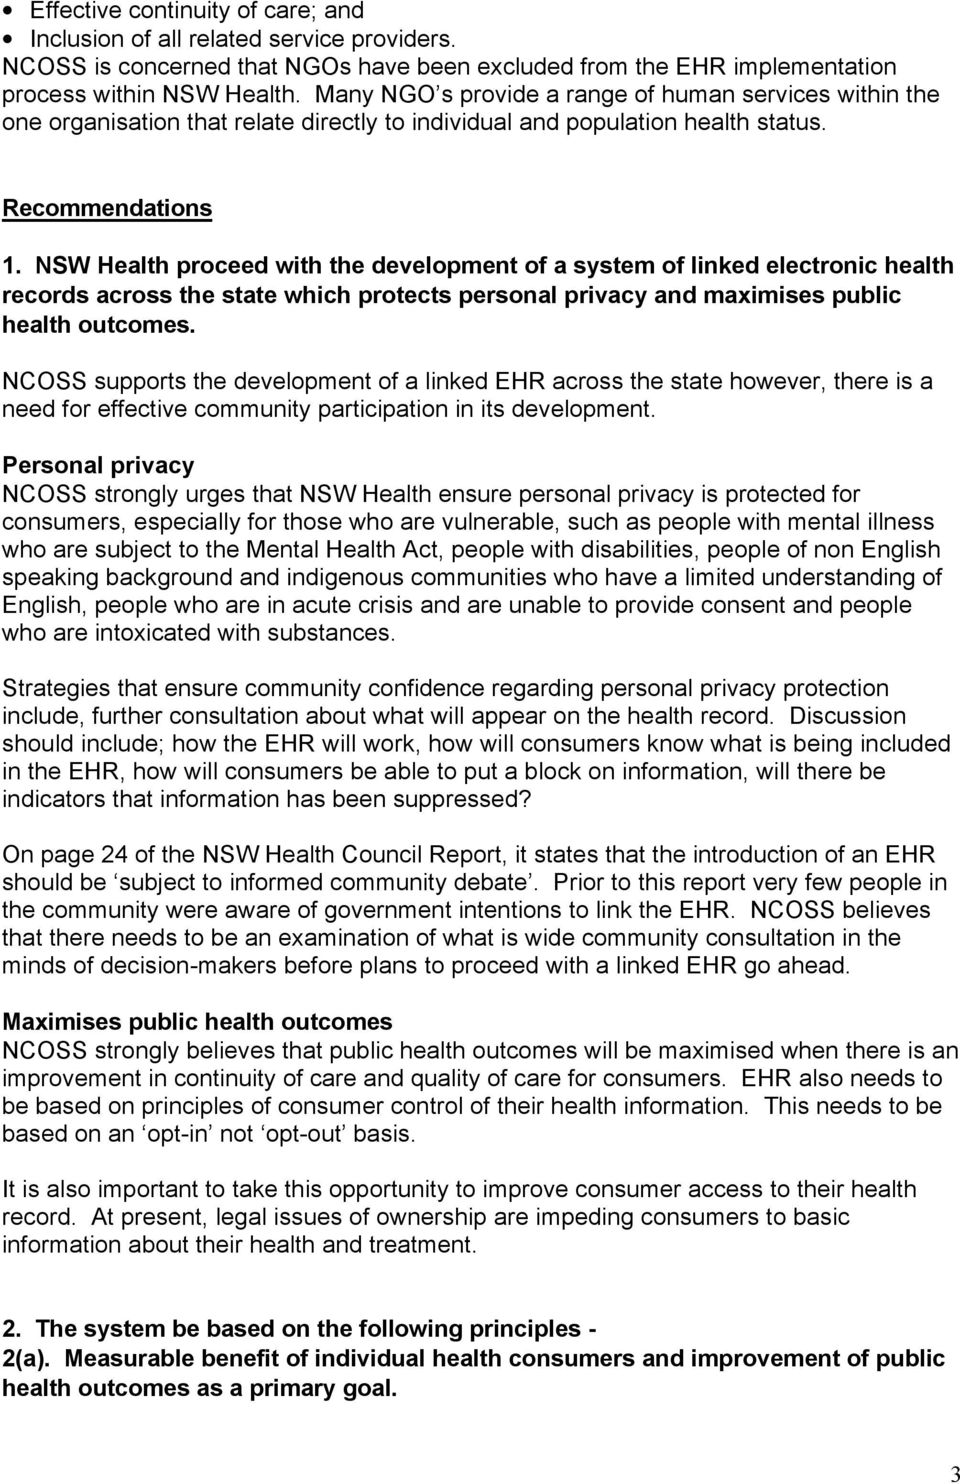 NSW Health proceed with the development of a system of linked electronic health records across the state which protects personal privacy and maximises public health outcomes.